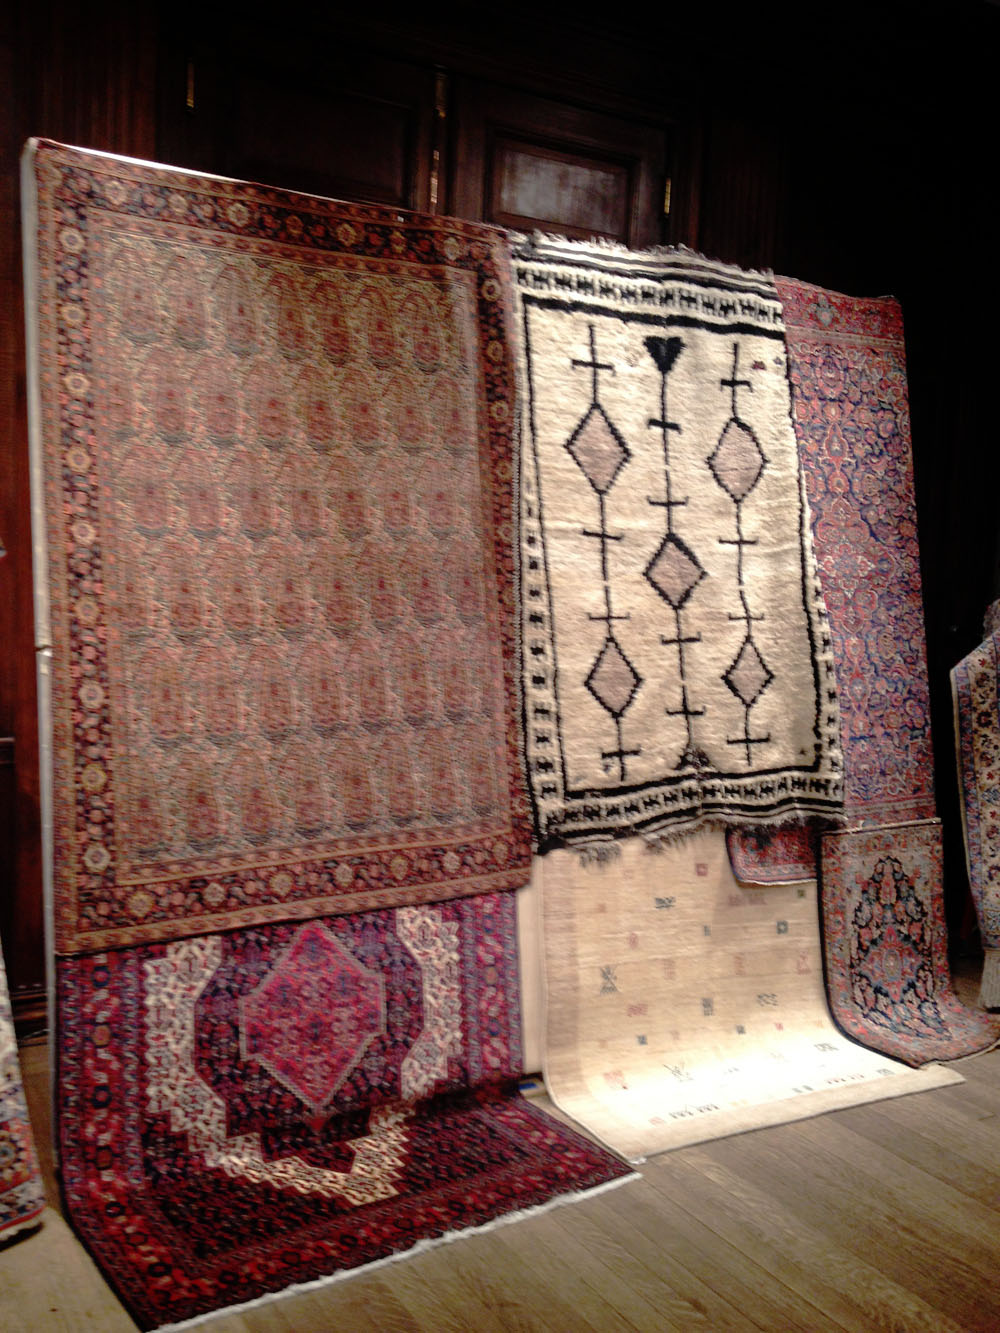 Exotic destinations and their wares: Rugs